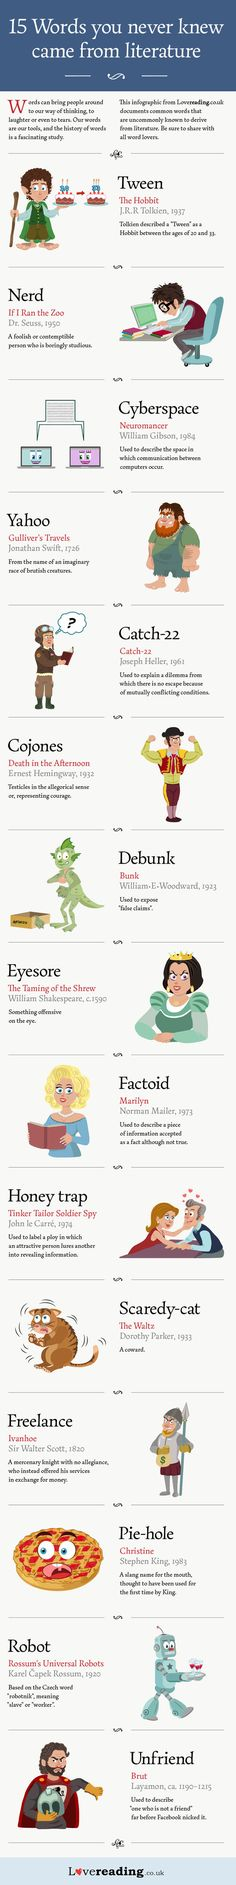 A guide to words that you never knew came from literature.